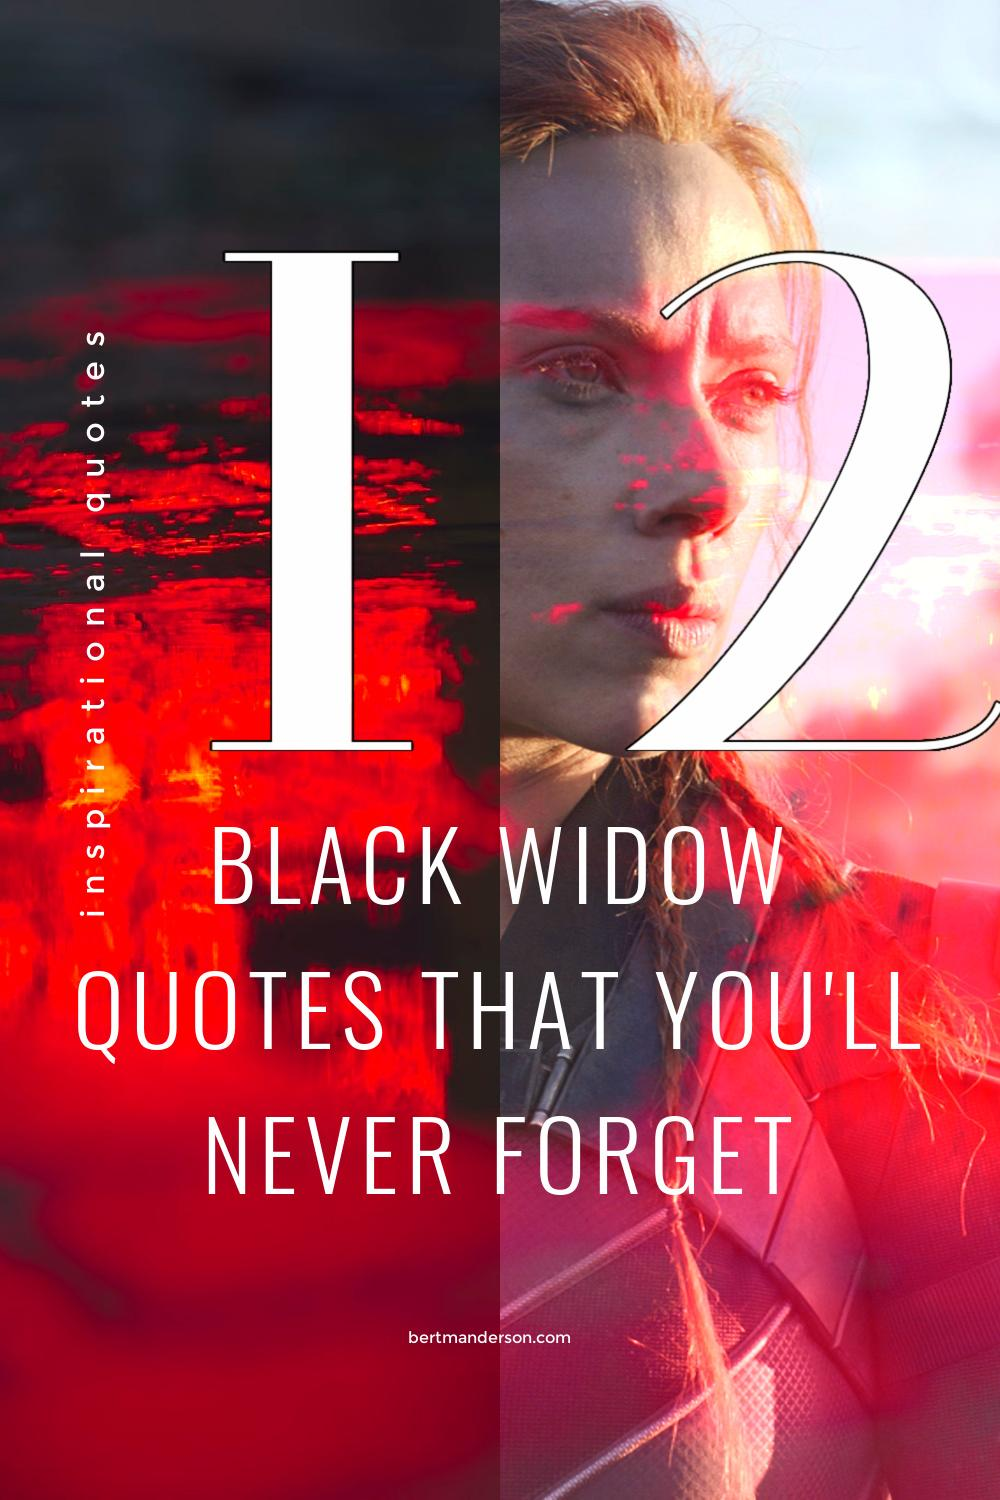 12 Black Widow quotes that you'll never forget.